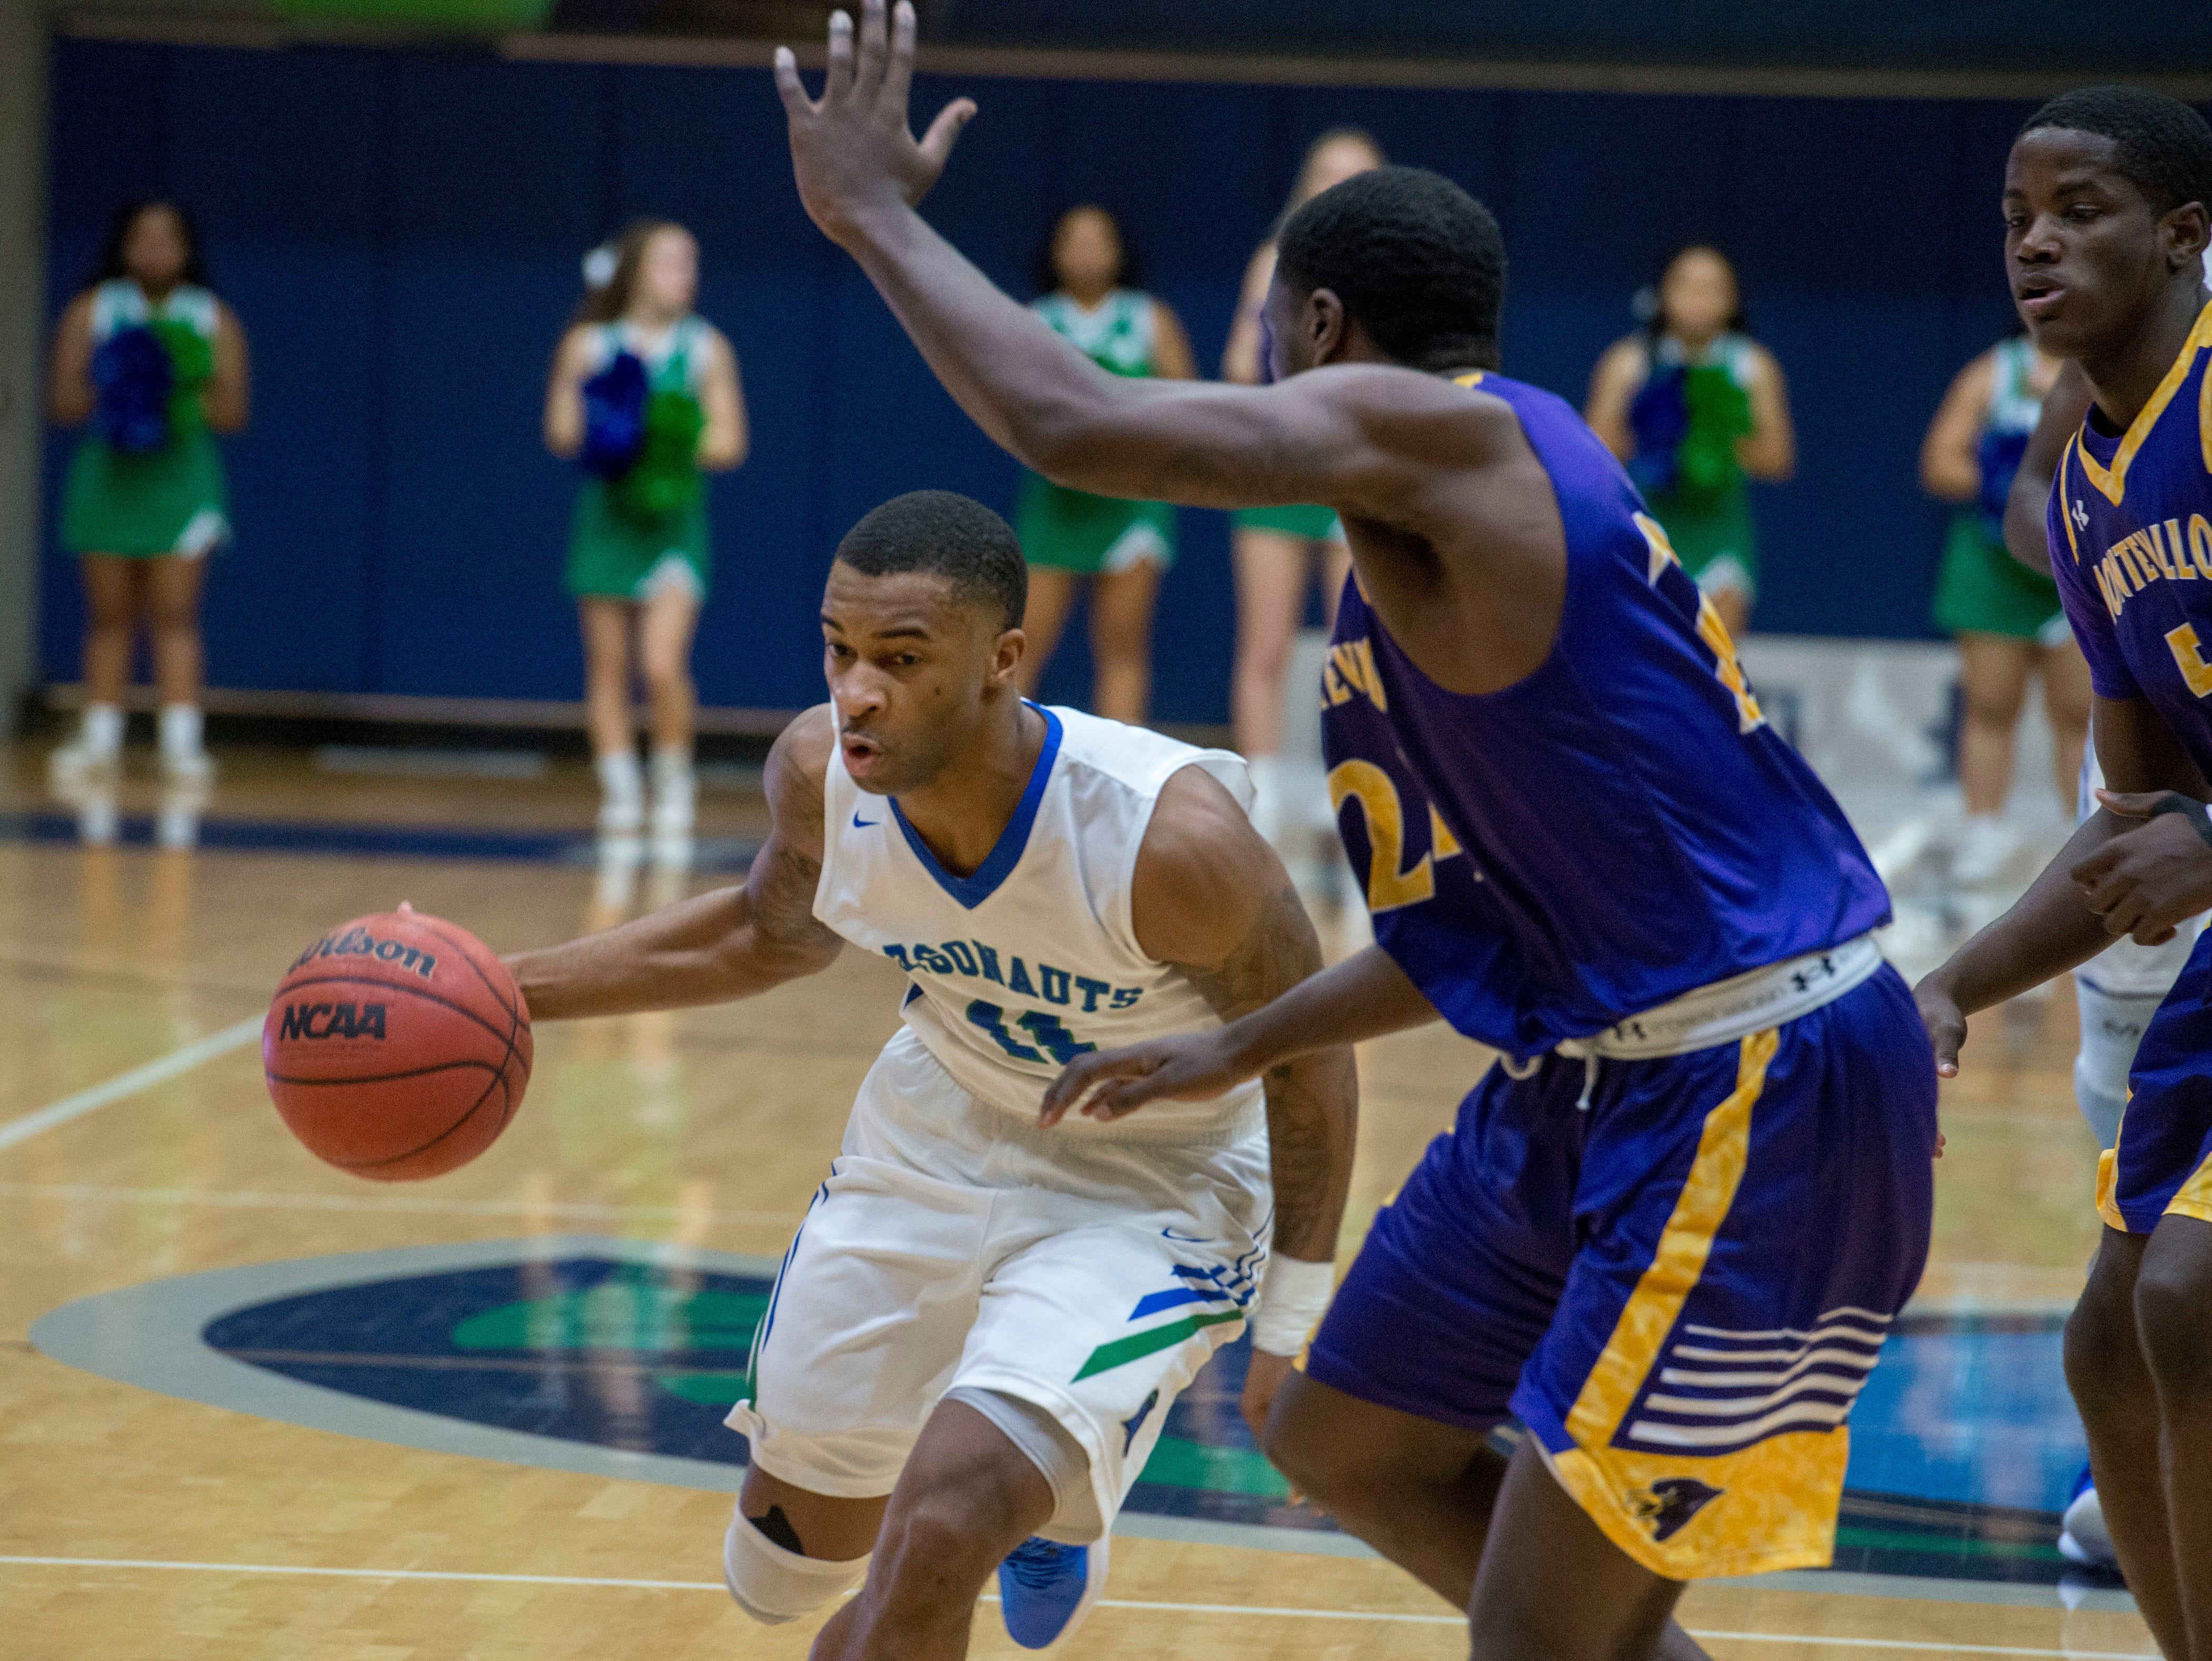 West Florida's Rashaan Benson drives to the basket as they take on the Montevallo Falcons Saturday, January 5, 2019 at the UWF Field House